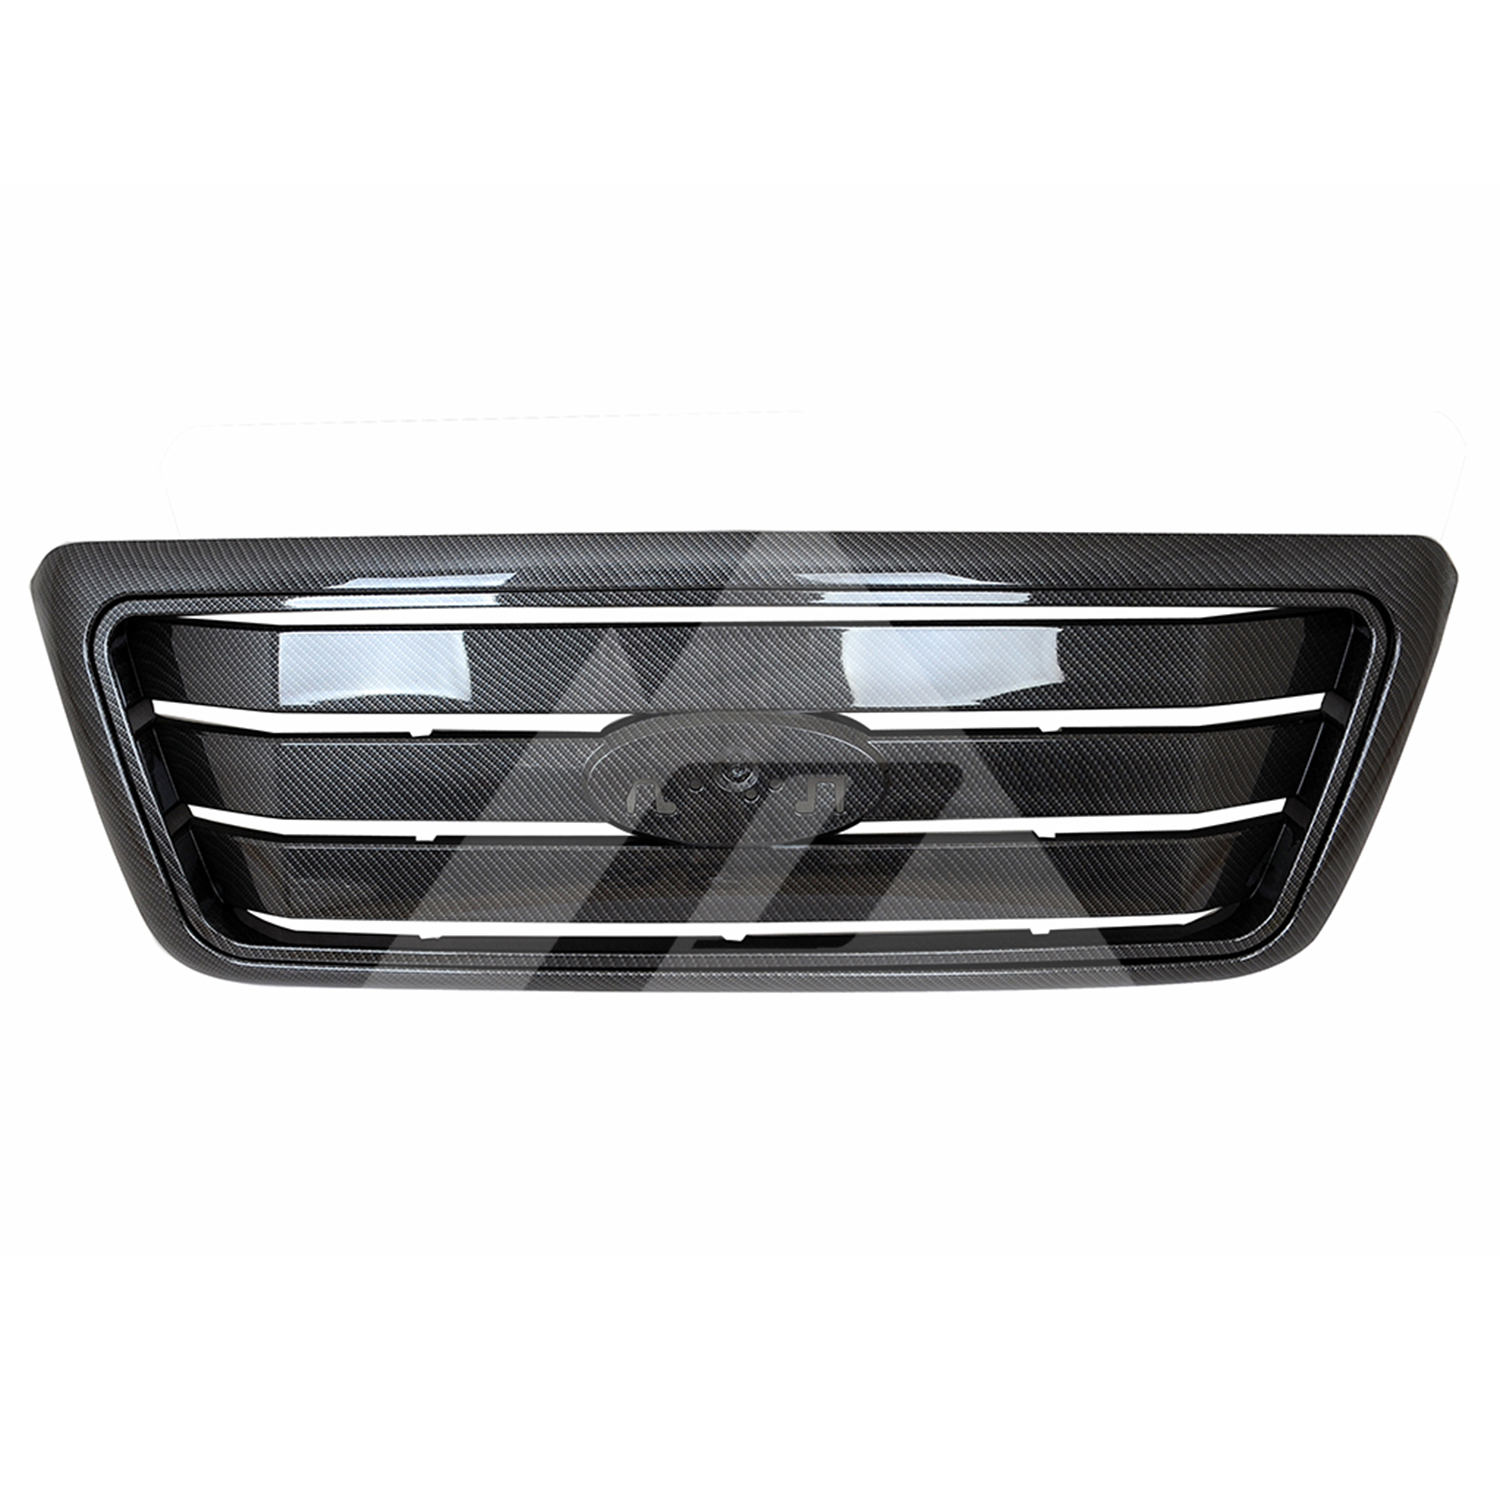 for 2004 2005 <font><b>2006</b></font> 2007 2008 <font><b>Ford</b></font> <font><b>F150</b></font> ABS Carbon Fiber Horizontal Packaged Grille image